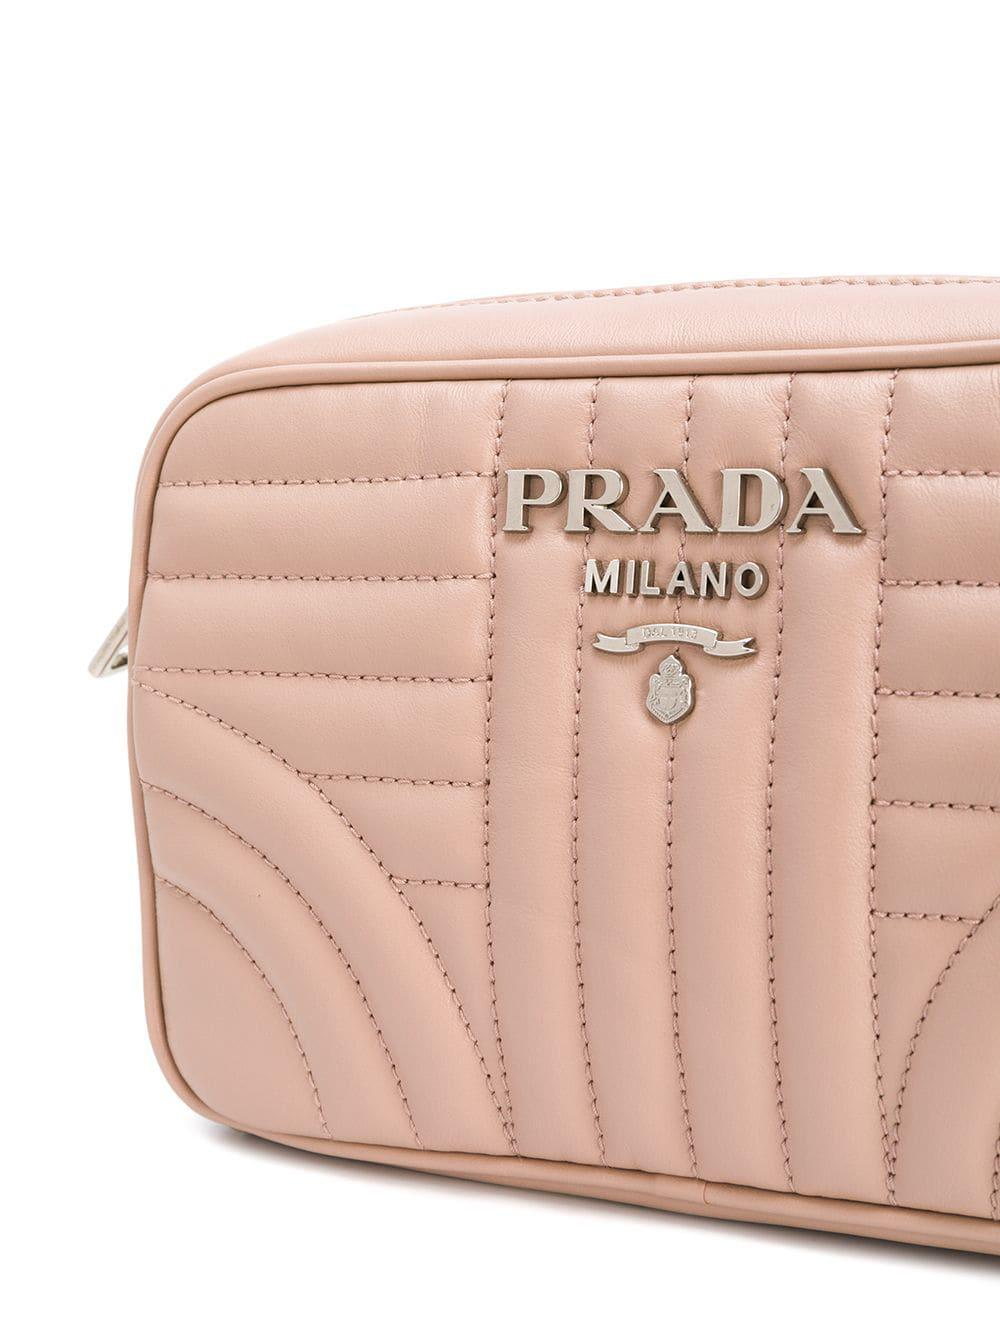 Lyst - Prada Diagramme Leather Crossbody Bag in Pink 889dca806fd3a